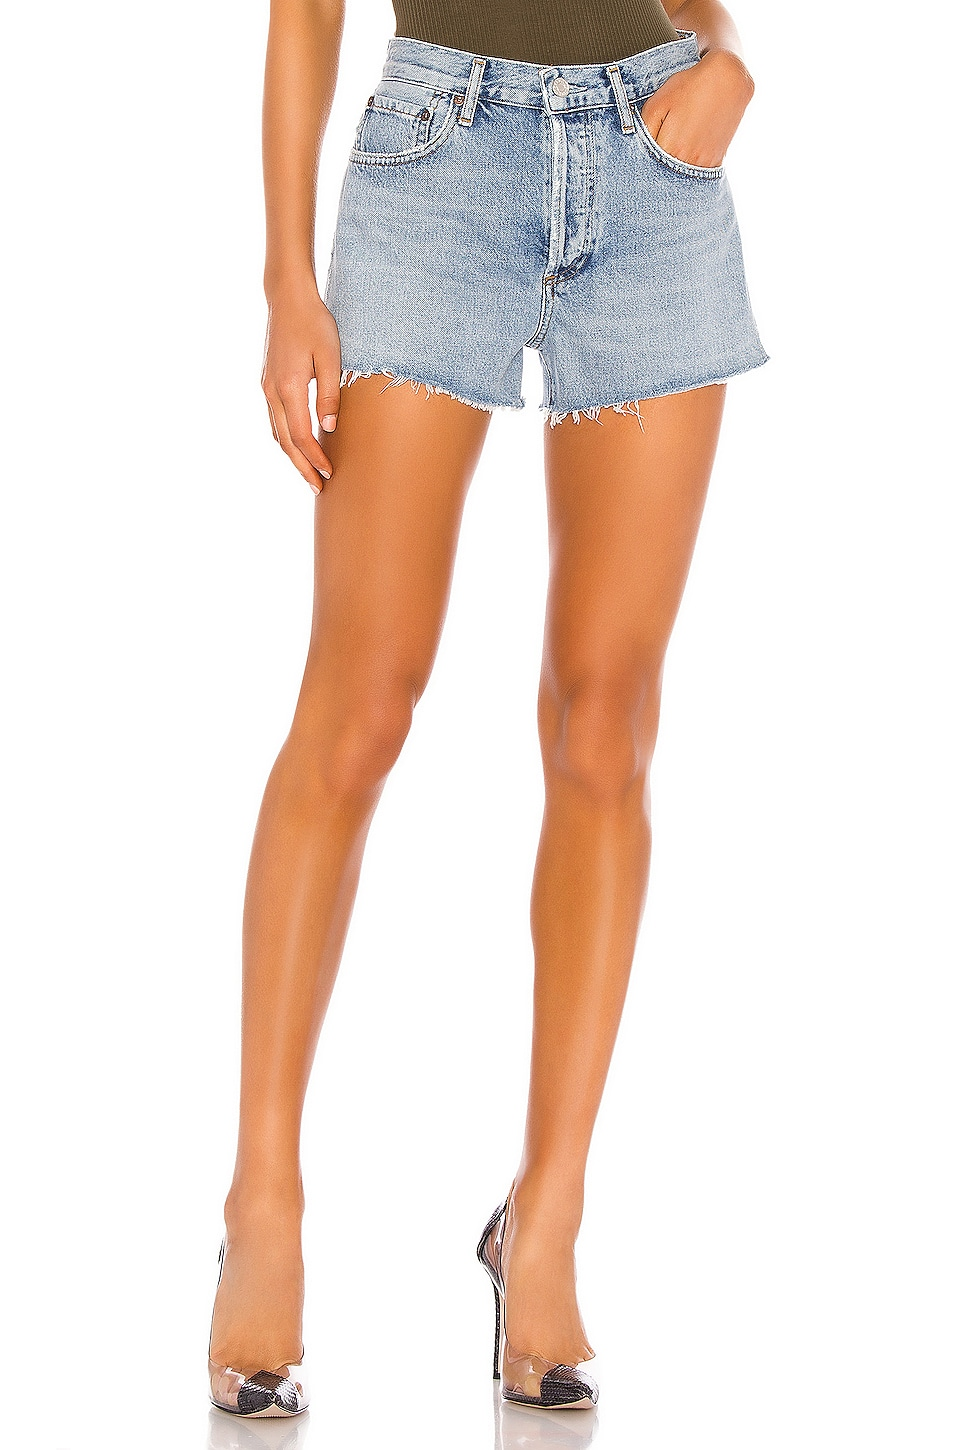 Parker Vintage Cut Off Short             AGOLDE                                                                                                       CA$ 181.99 11